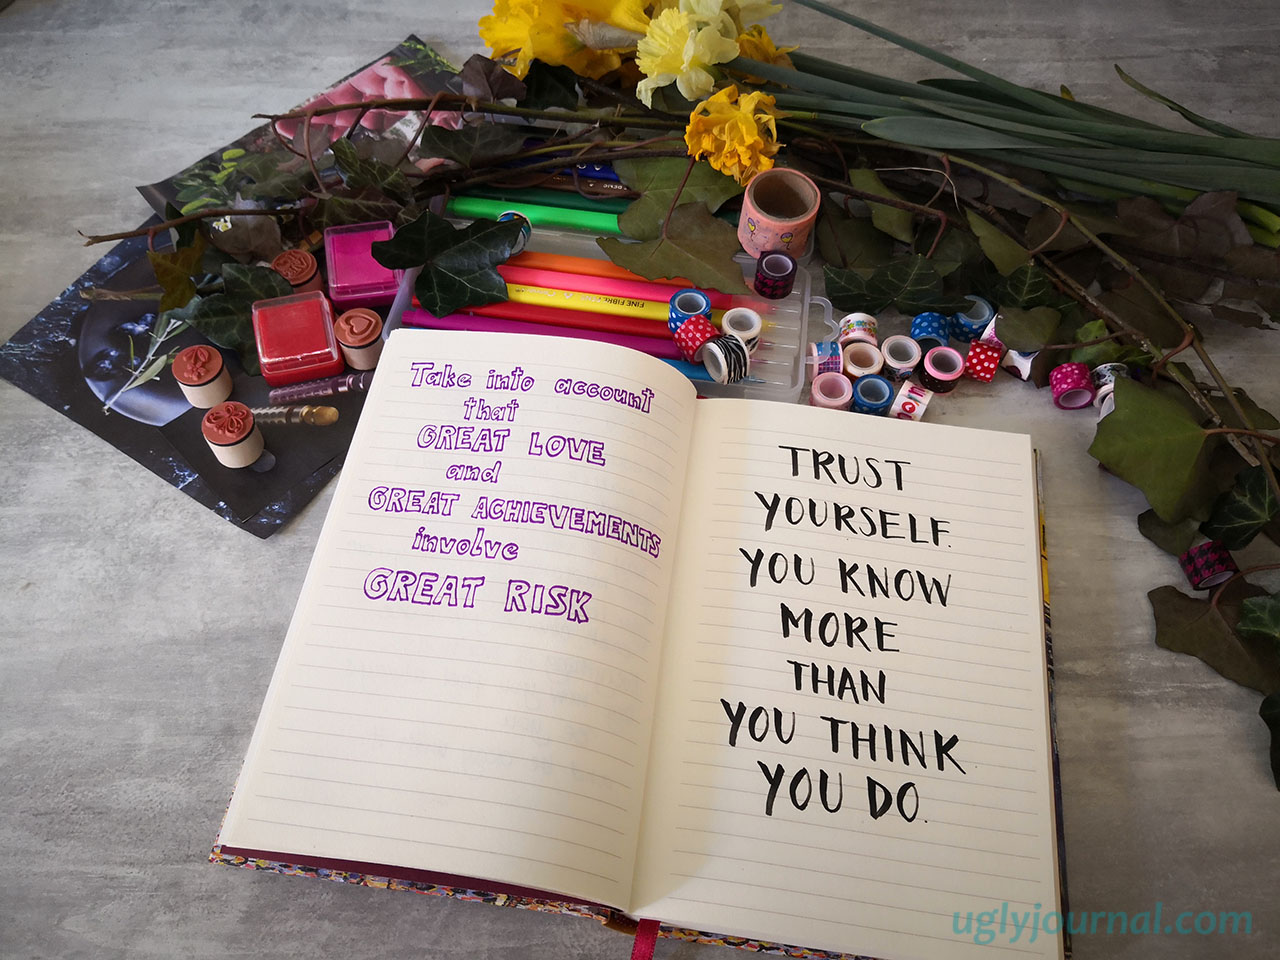 10 THINGS TO GIVE UP WHILE JOURNALING